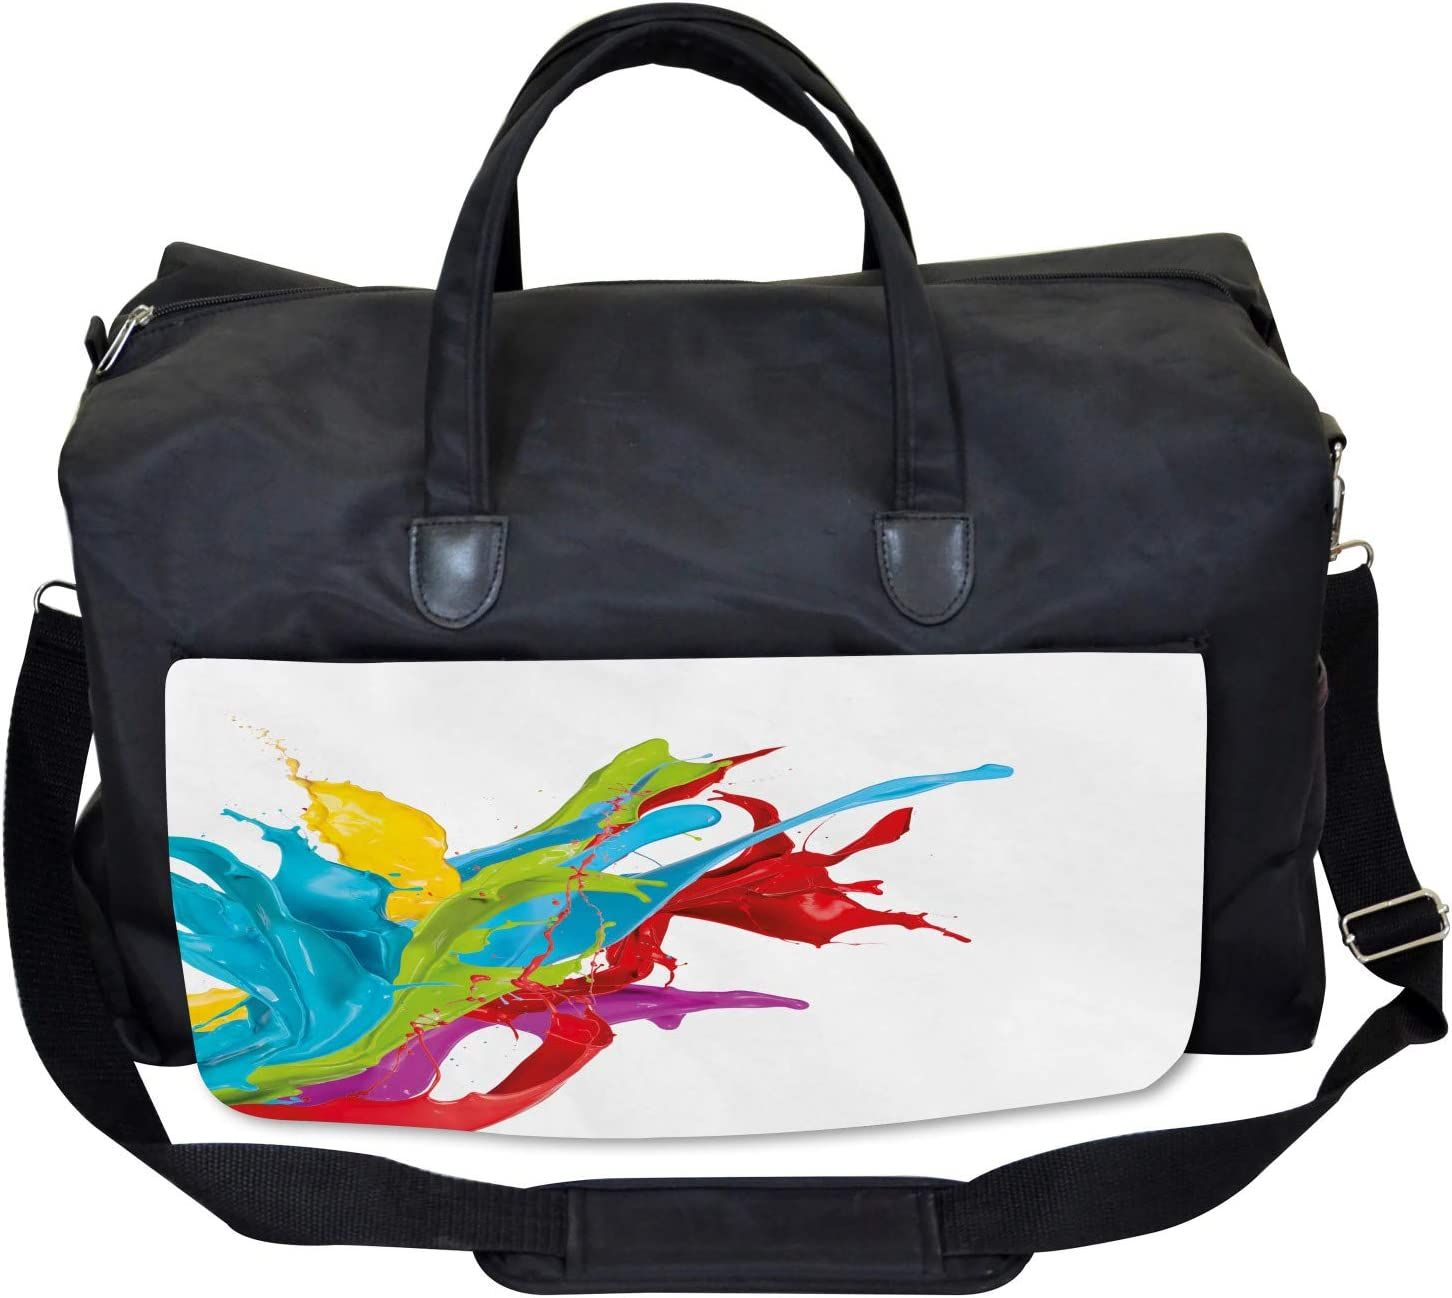 Large Weekender Carry-on Surreal Digital Paint Ambesonne Colorful Gym Bag